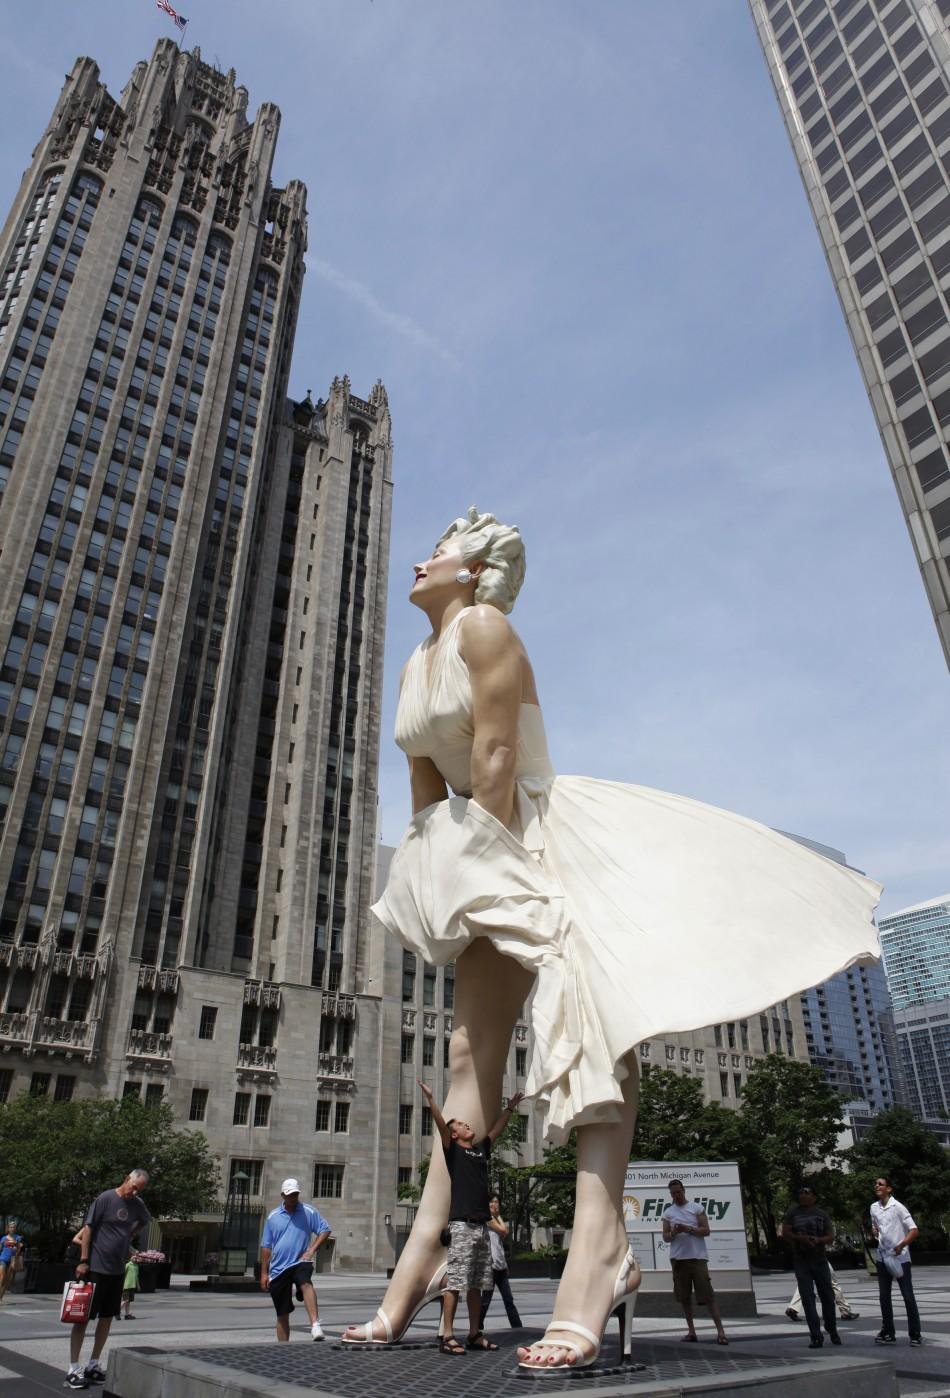 26-foot tall statue of Marilyn Monroe in Chicago